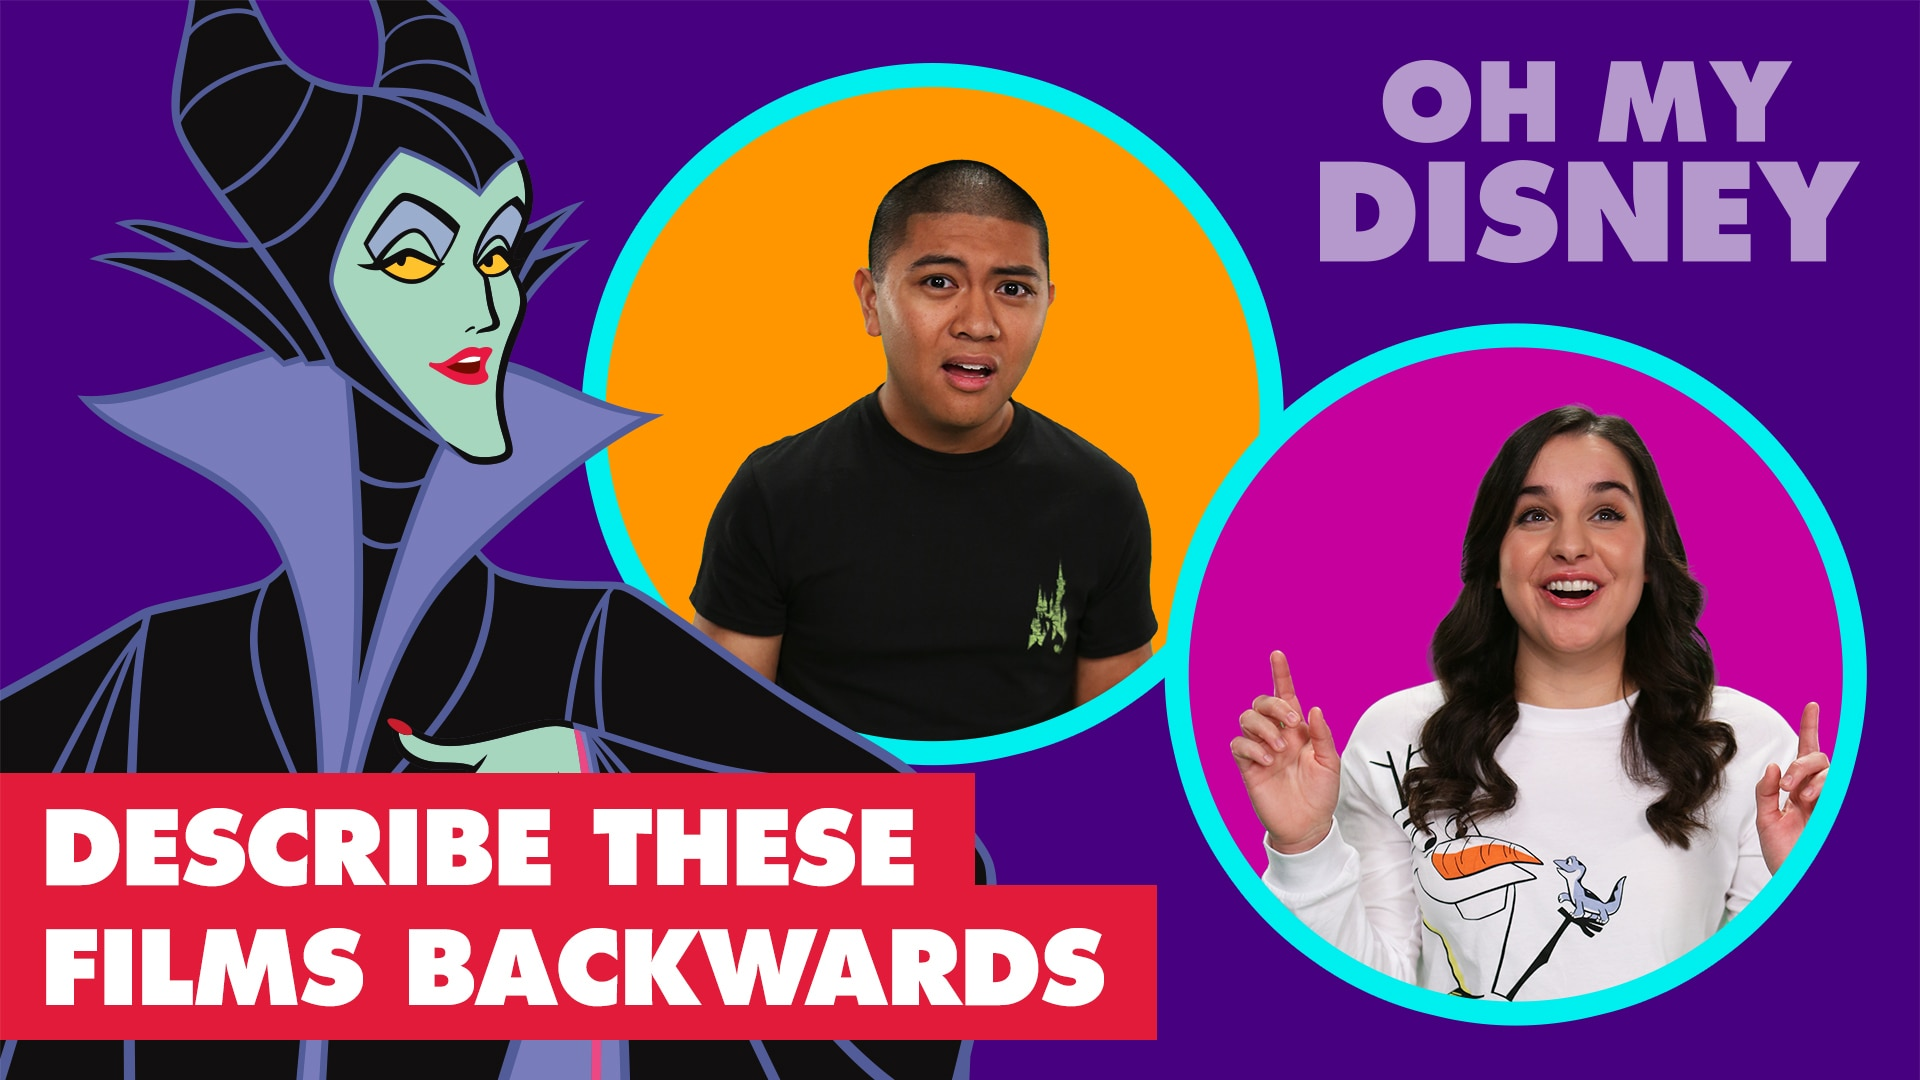 Fans Retell Disney Movies Backwards in Under 60 Seconds | Let's Talk Disney